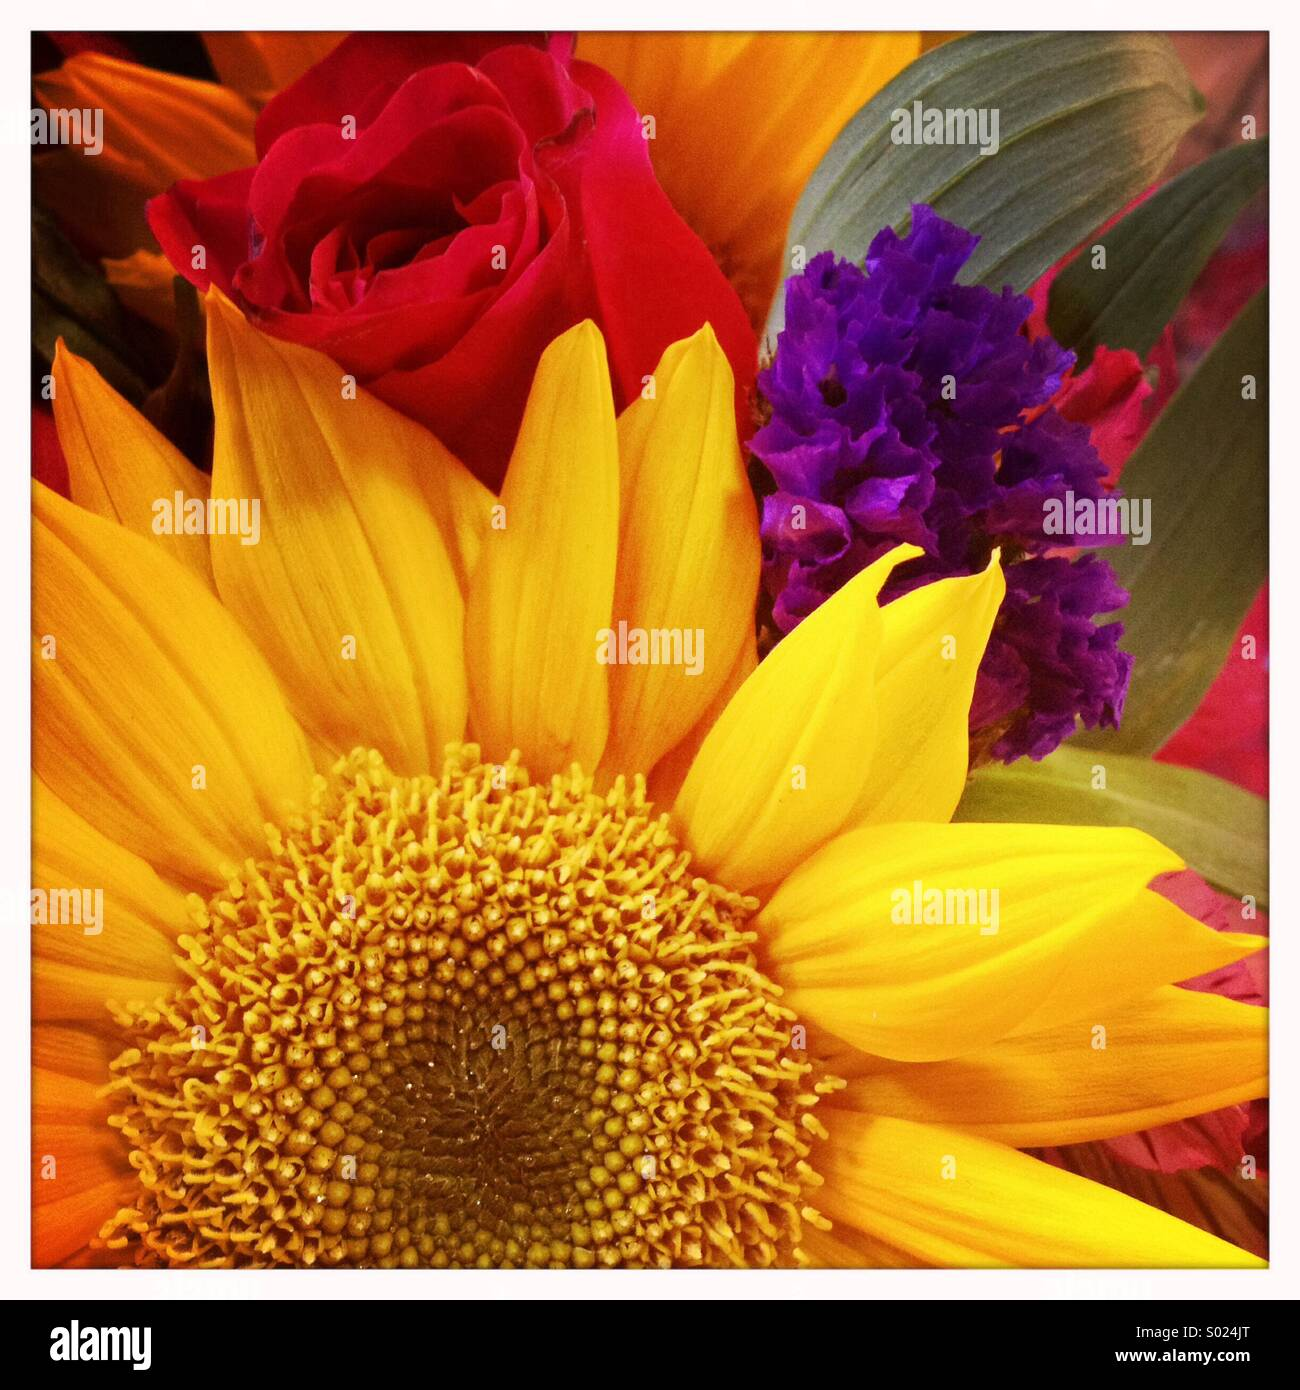 Sunflower Bouquet - Stock Image